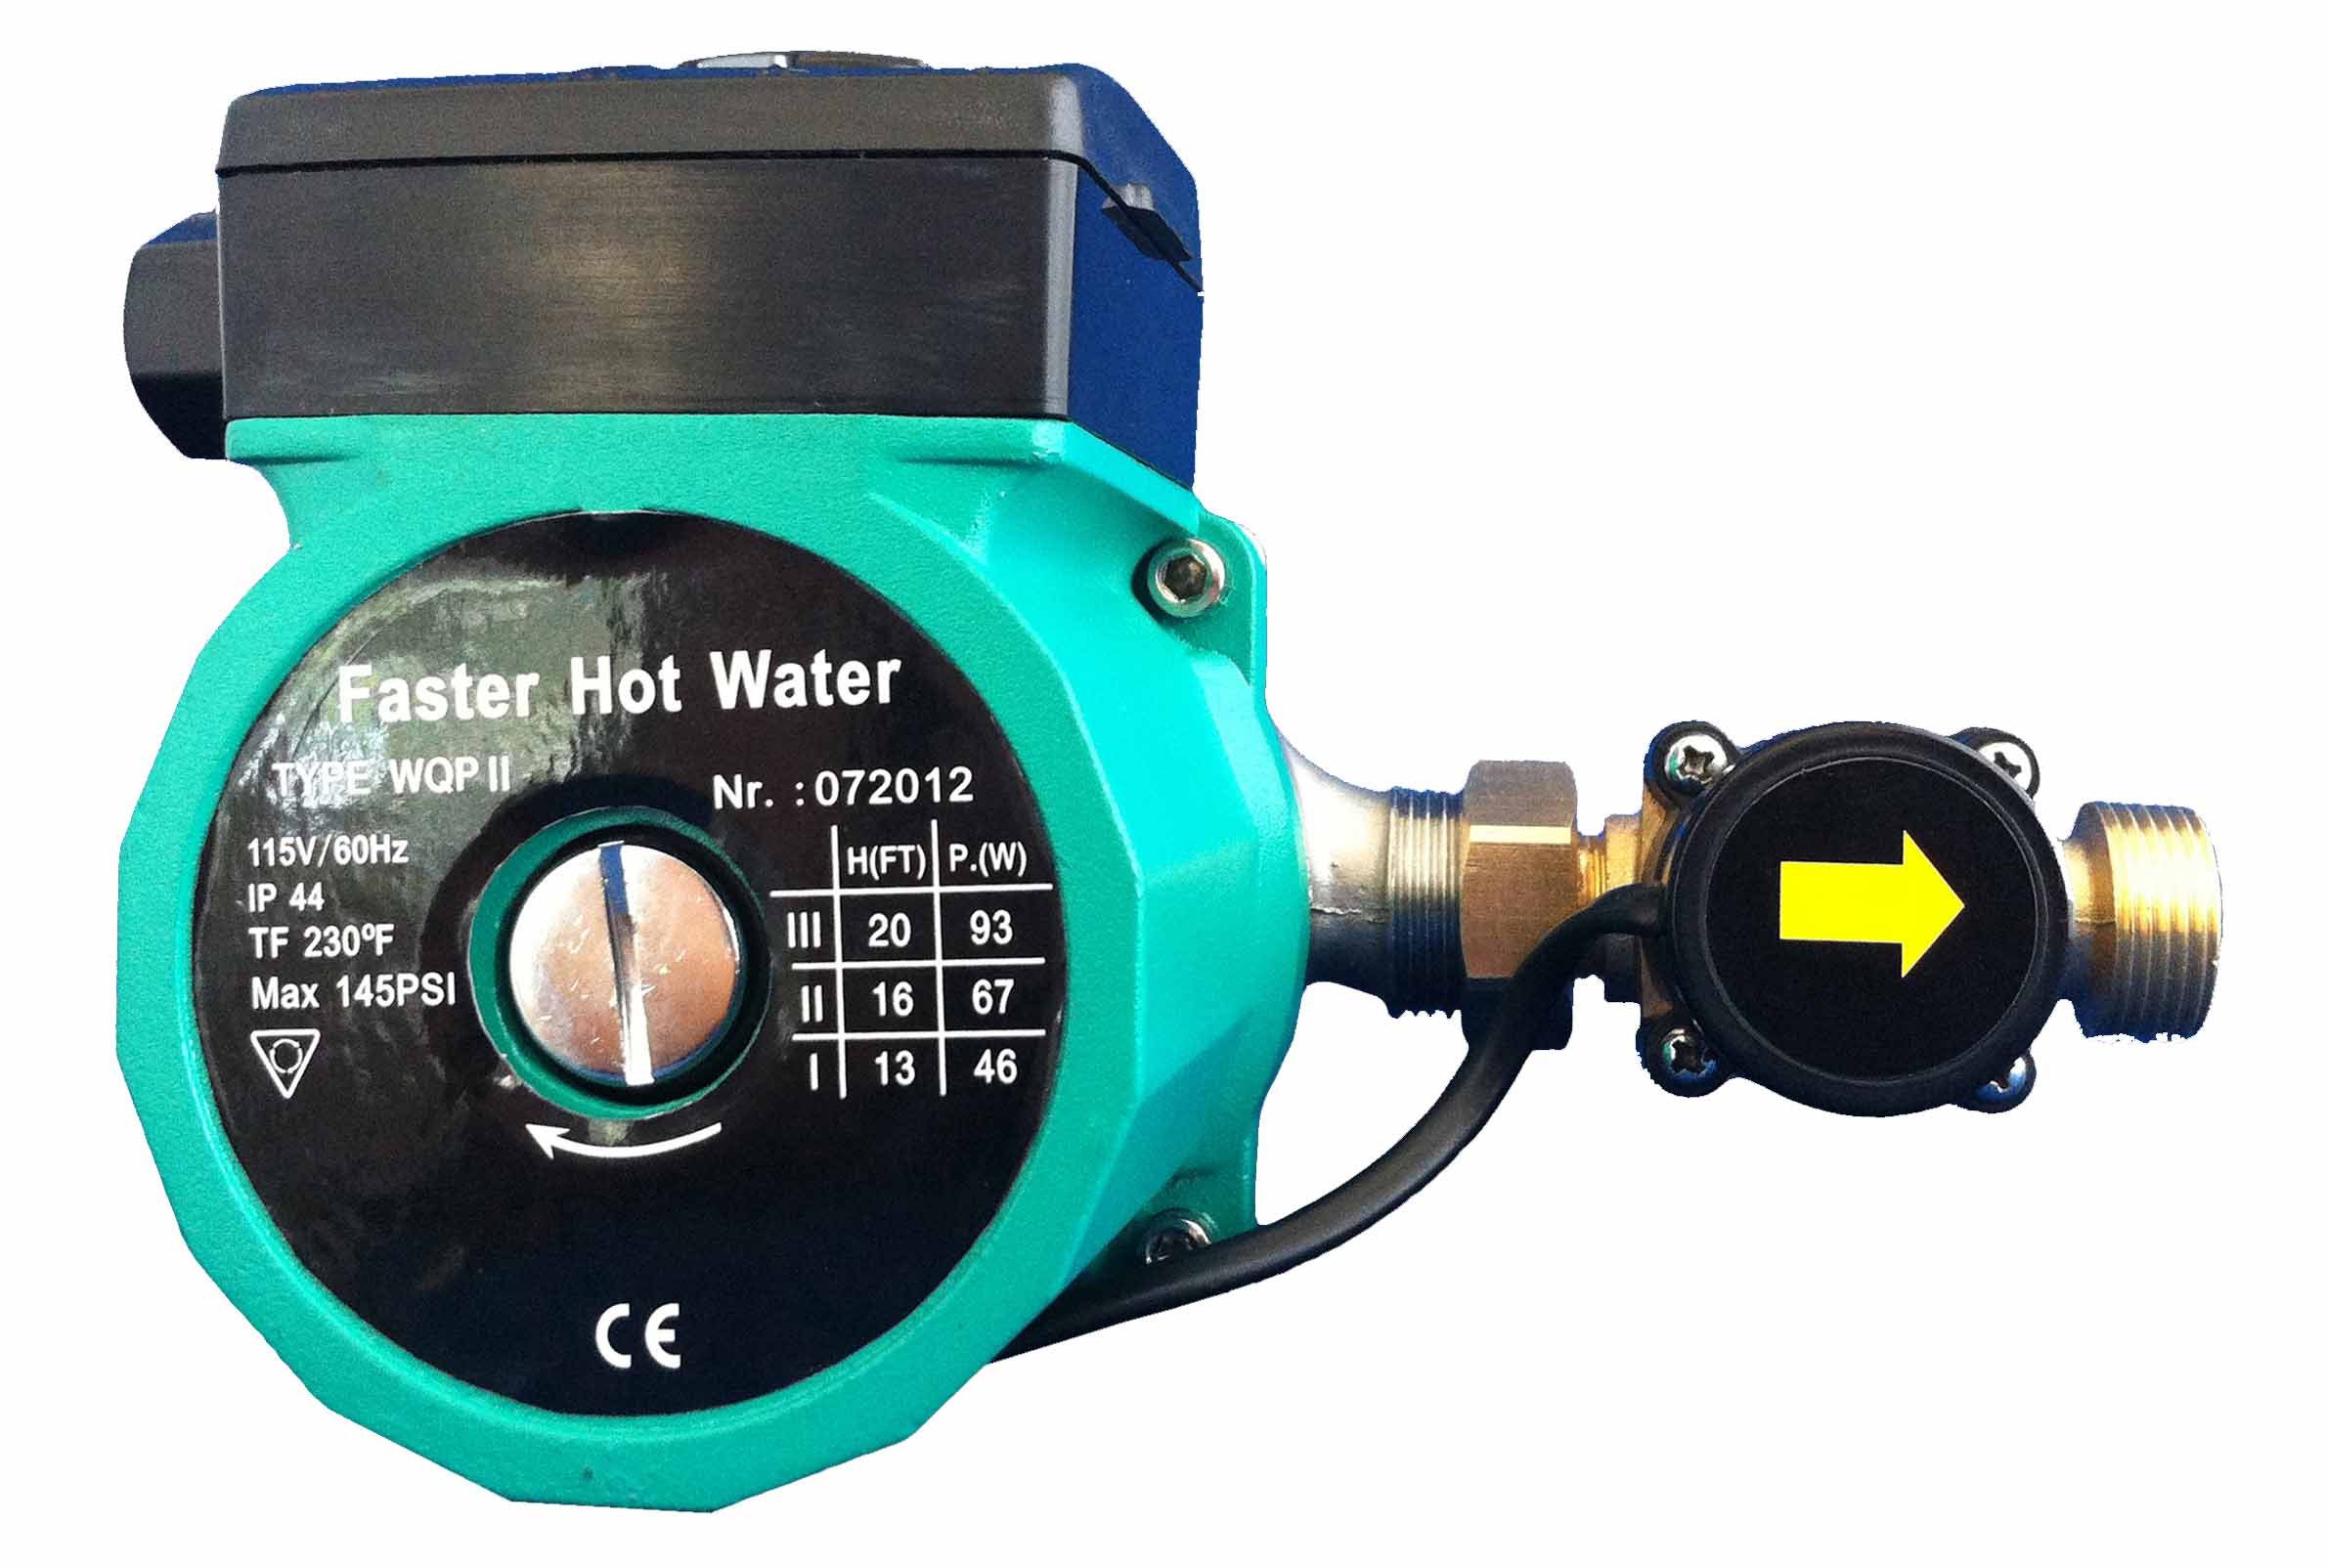 533428 New Install Wiring Help Needed G115 Logamatic 2107 Taco Sr504 Idhw as well Circulating Pump Diagram additionally Circulating Pump Diagram in addition Circulator Pump Wiring besides Instant Reverse Motor Wiring Diagram. on taco circ pumps for wiring diagram